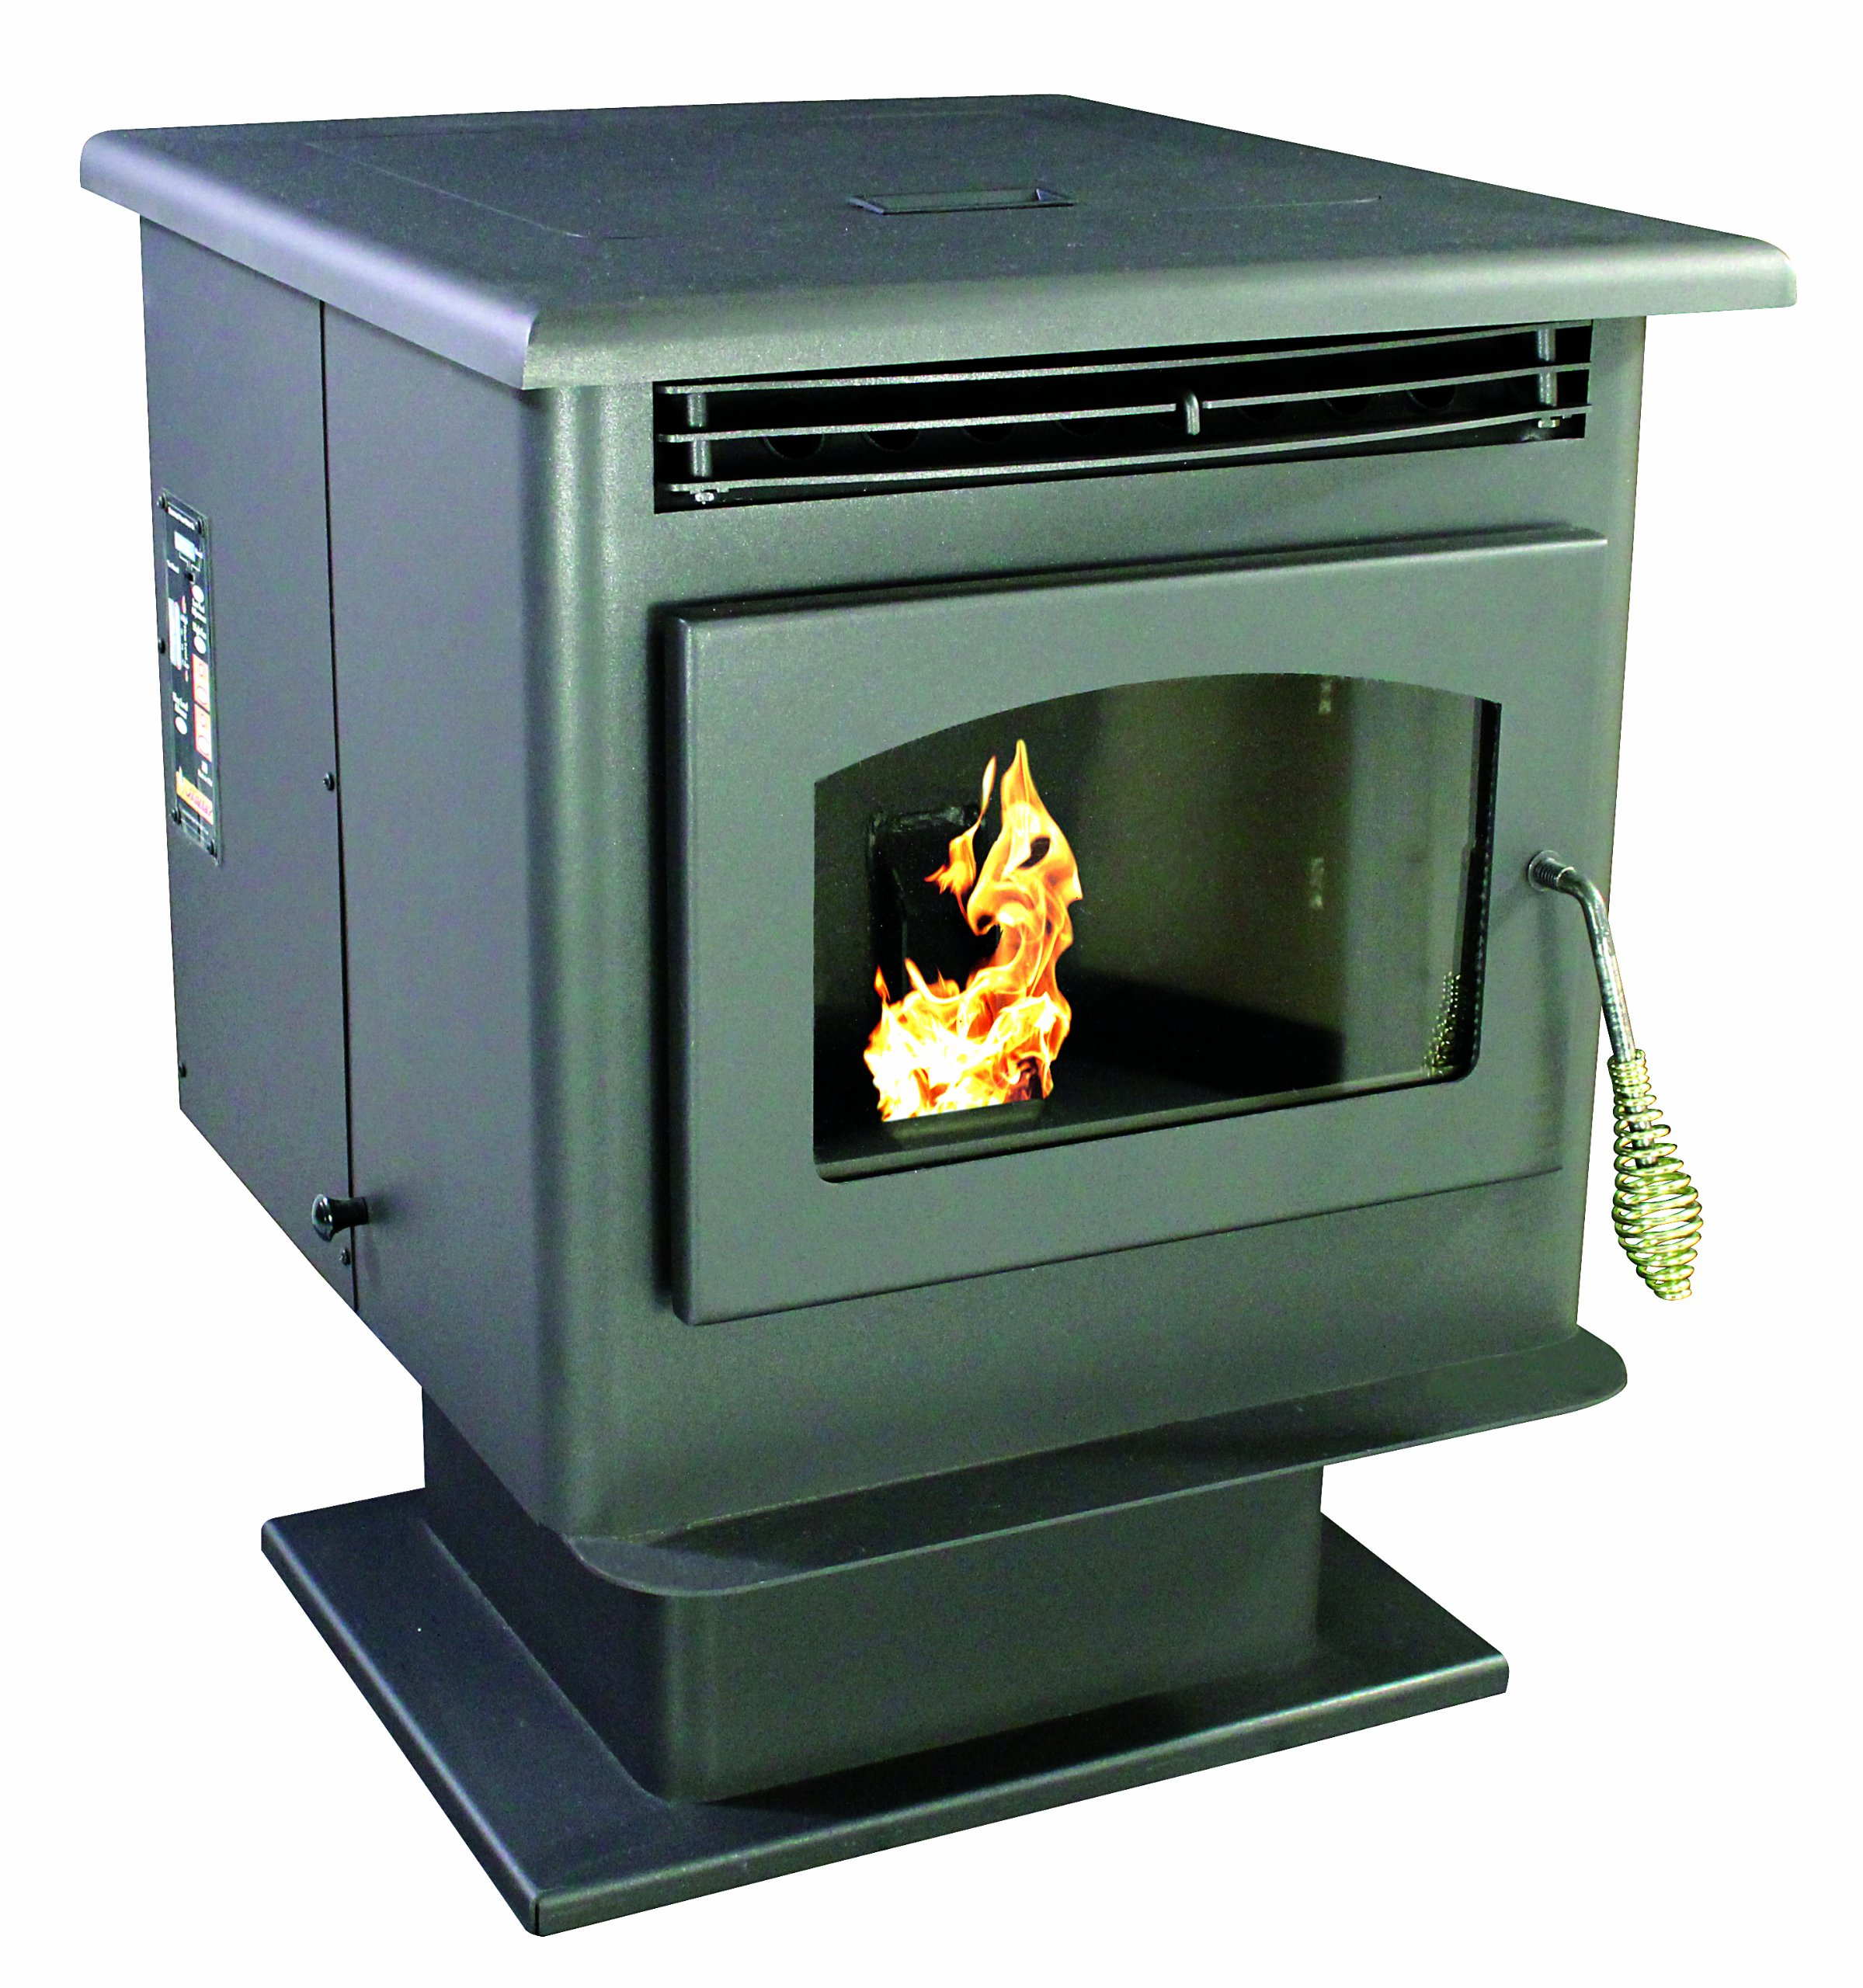 US Stove 5040 Pellet Stove, Small by US Stove Company